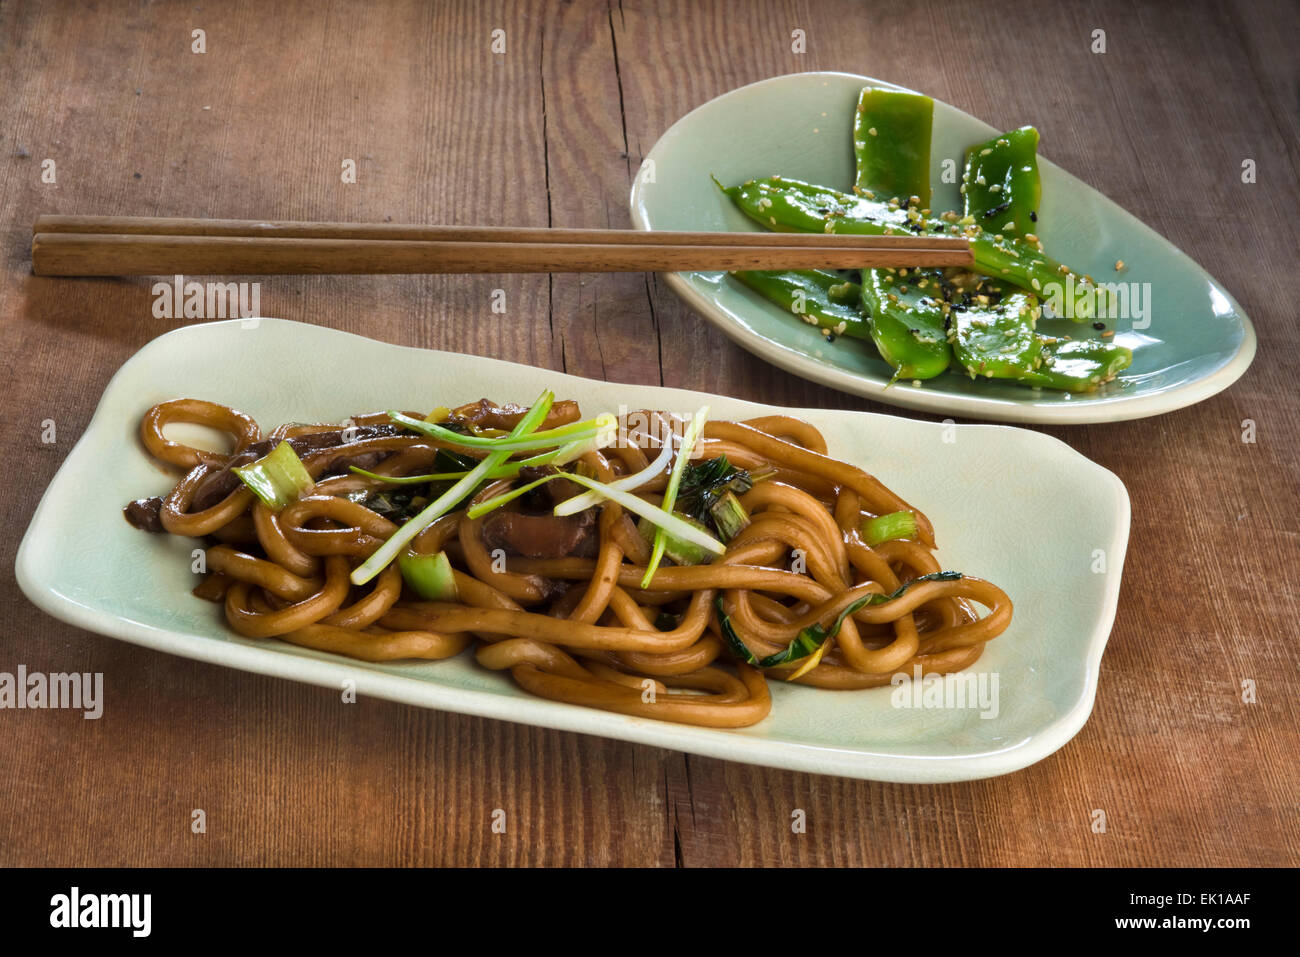 Stir fried udon noodles with bok choy, oyster mushroom and scallions and green beans fried with garlic and sesame. - Stock Image